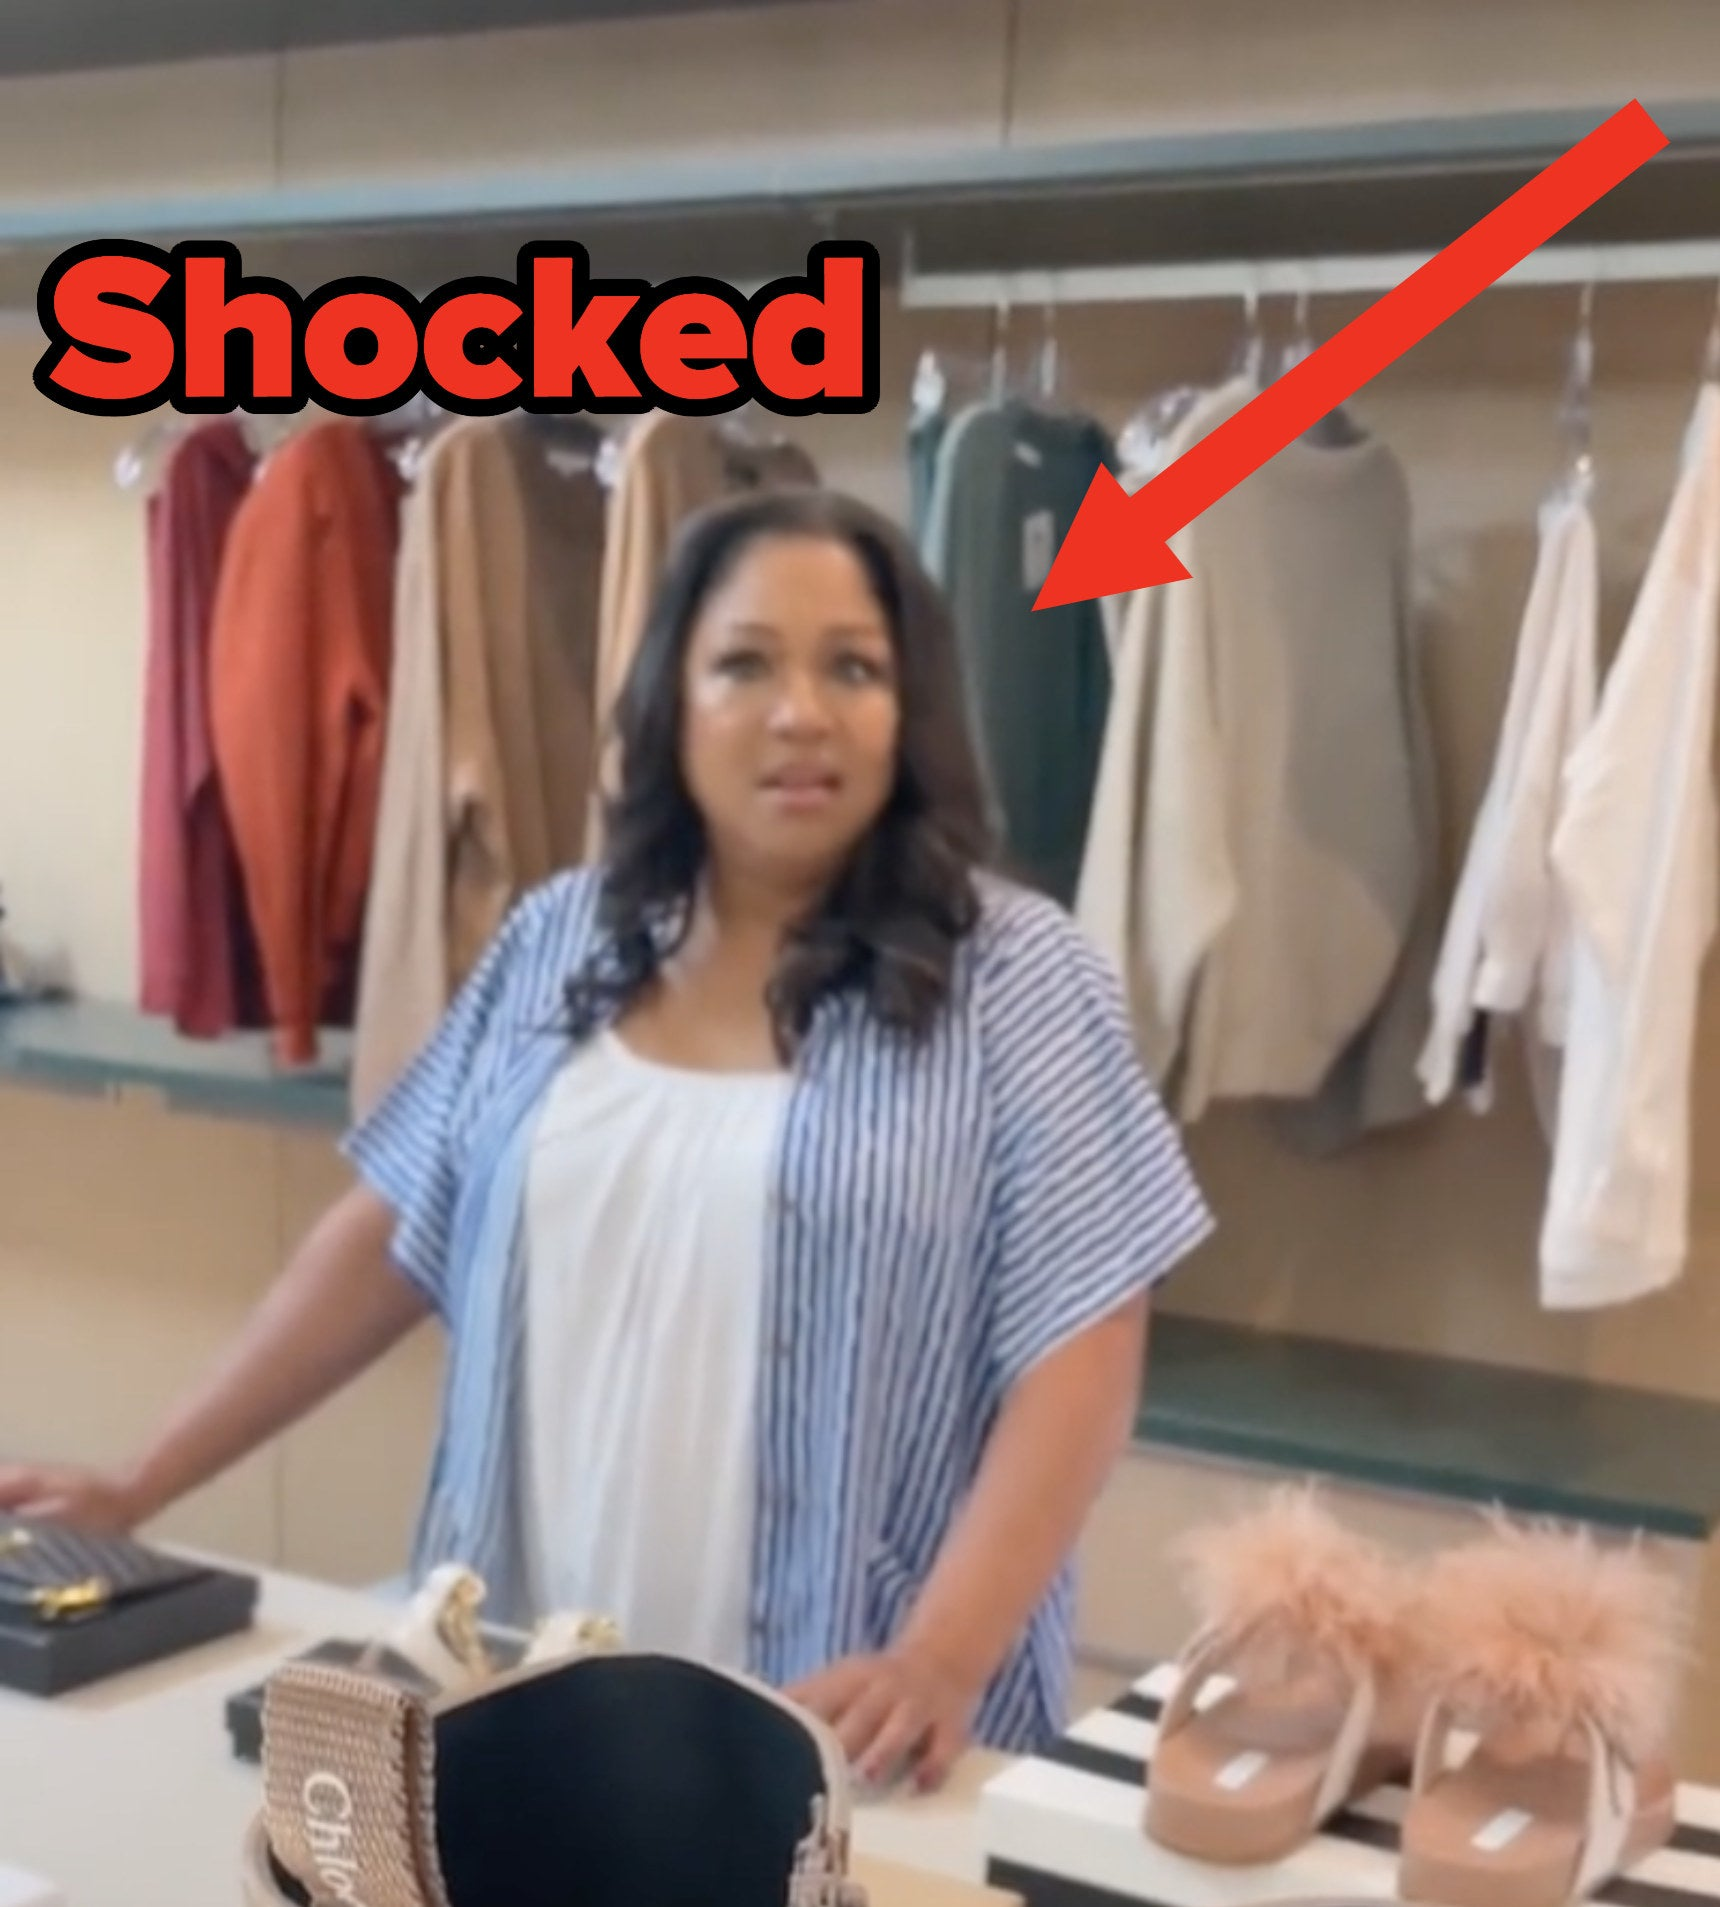 Lizzo's mom standing in the closet looking shocked